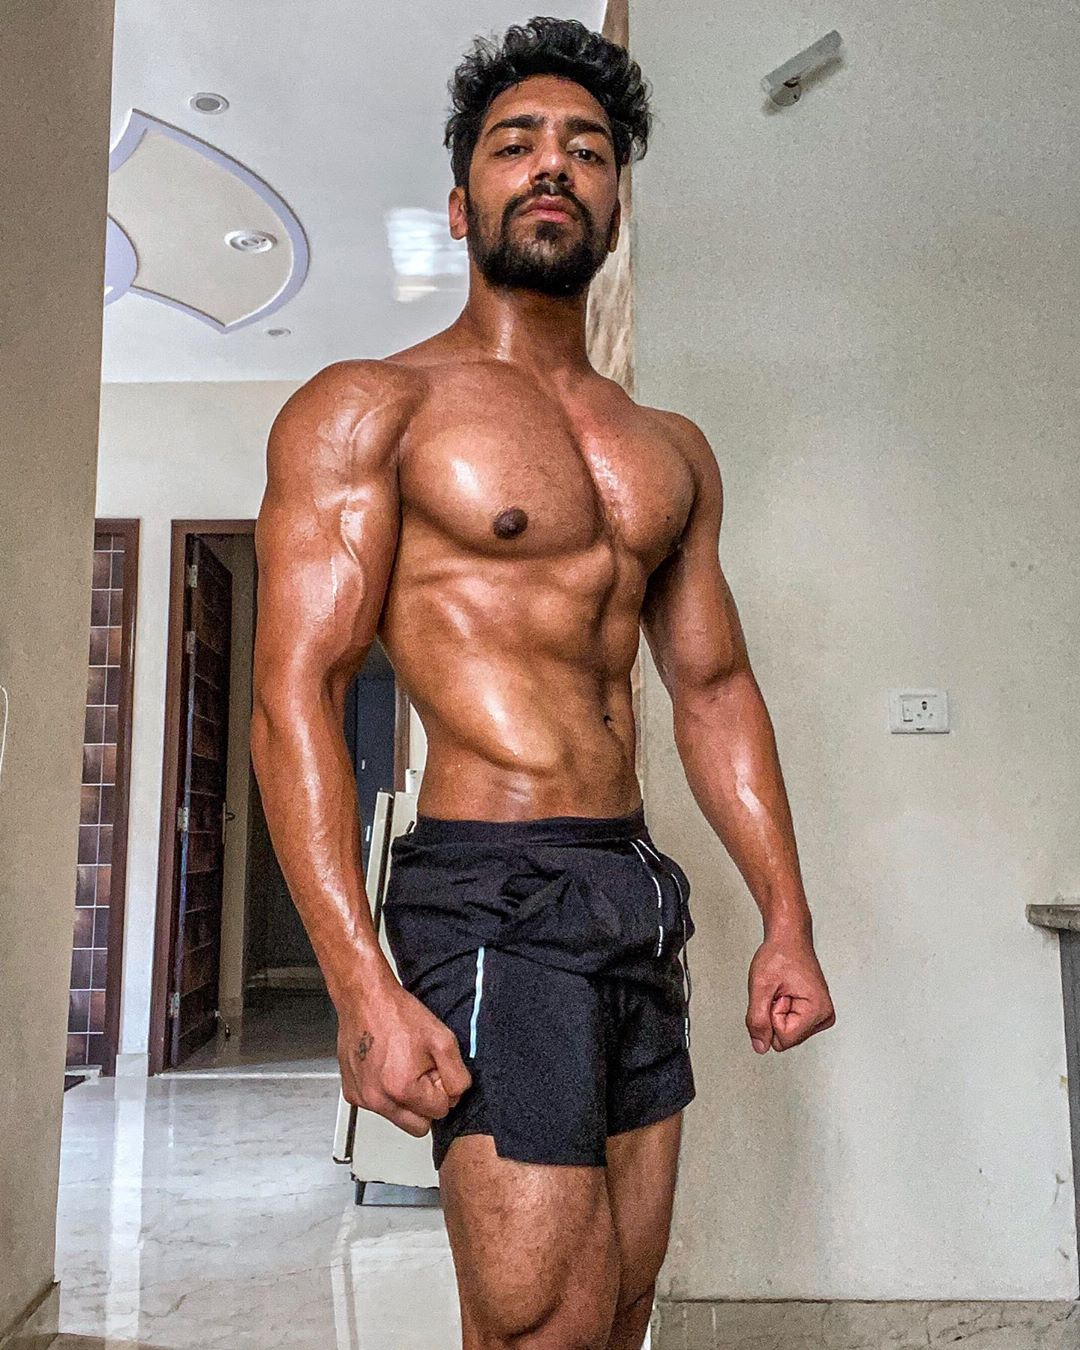 Rohit Khatri top model India - posing and flaunting his chest and abs